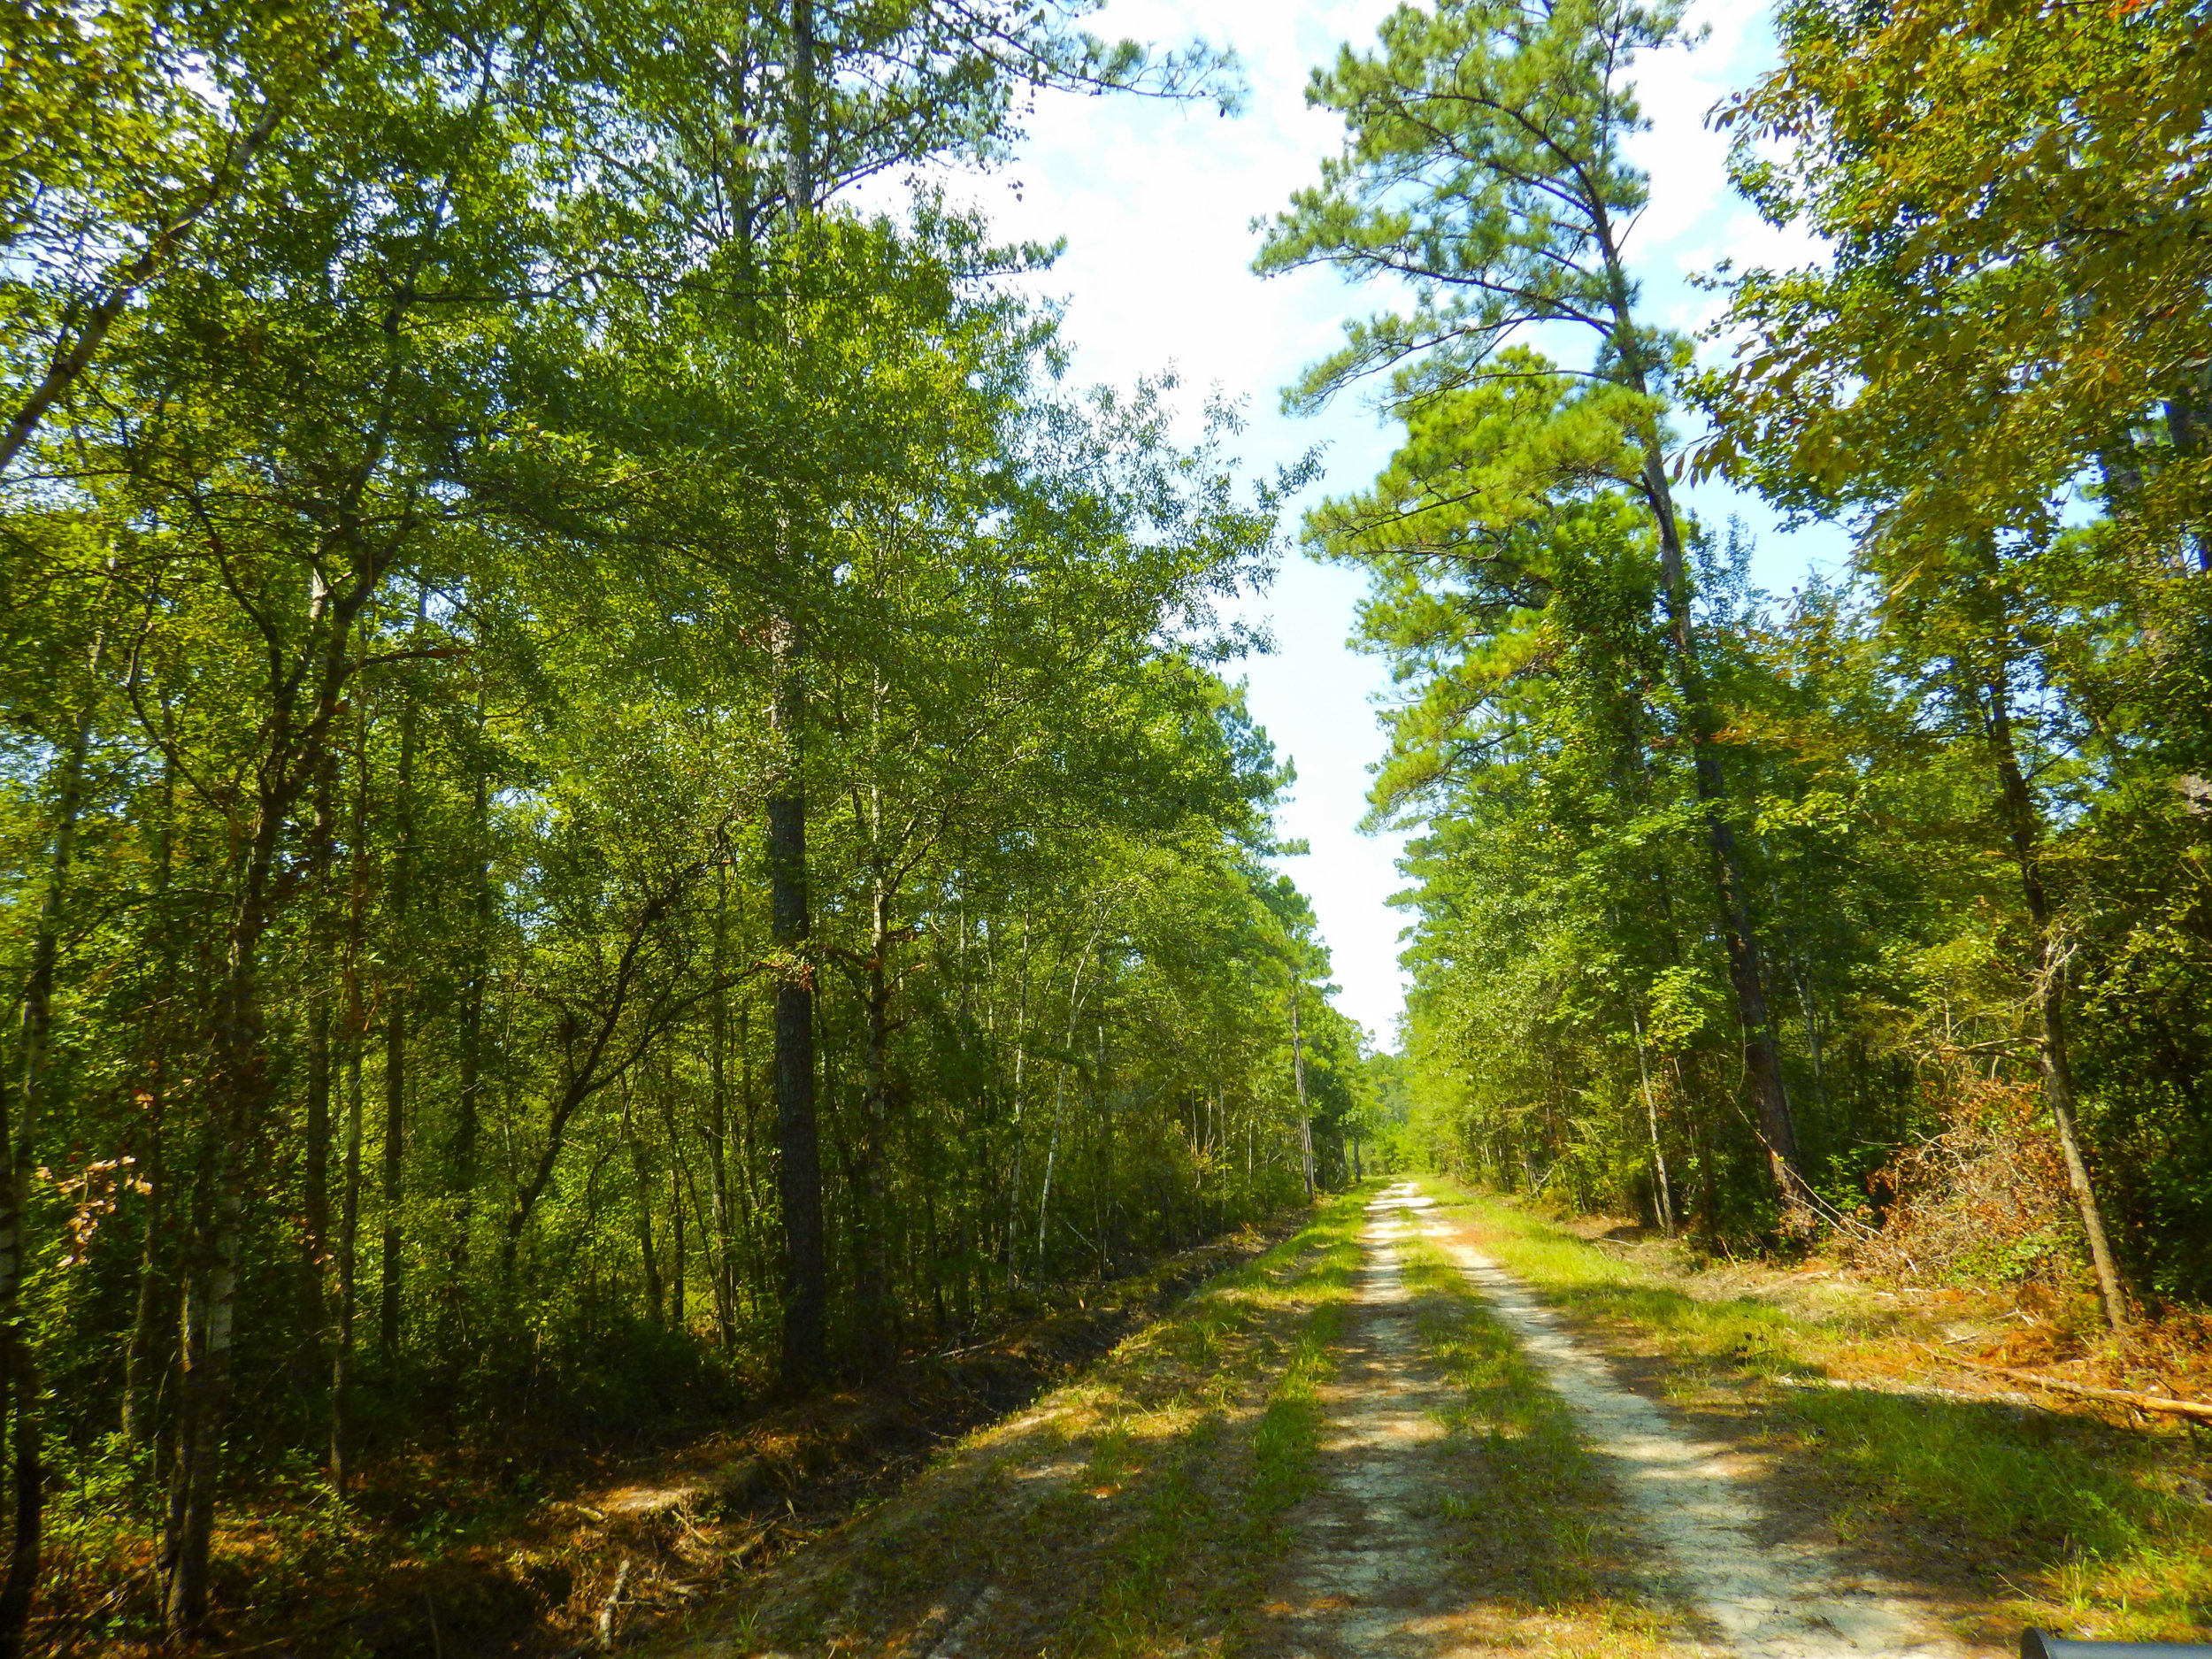 Logging road near the Highway 9 entrance to WRHP & WMA.